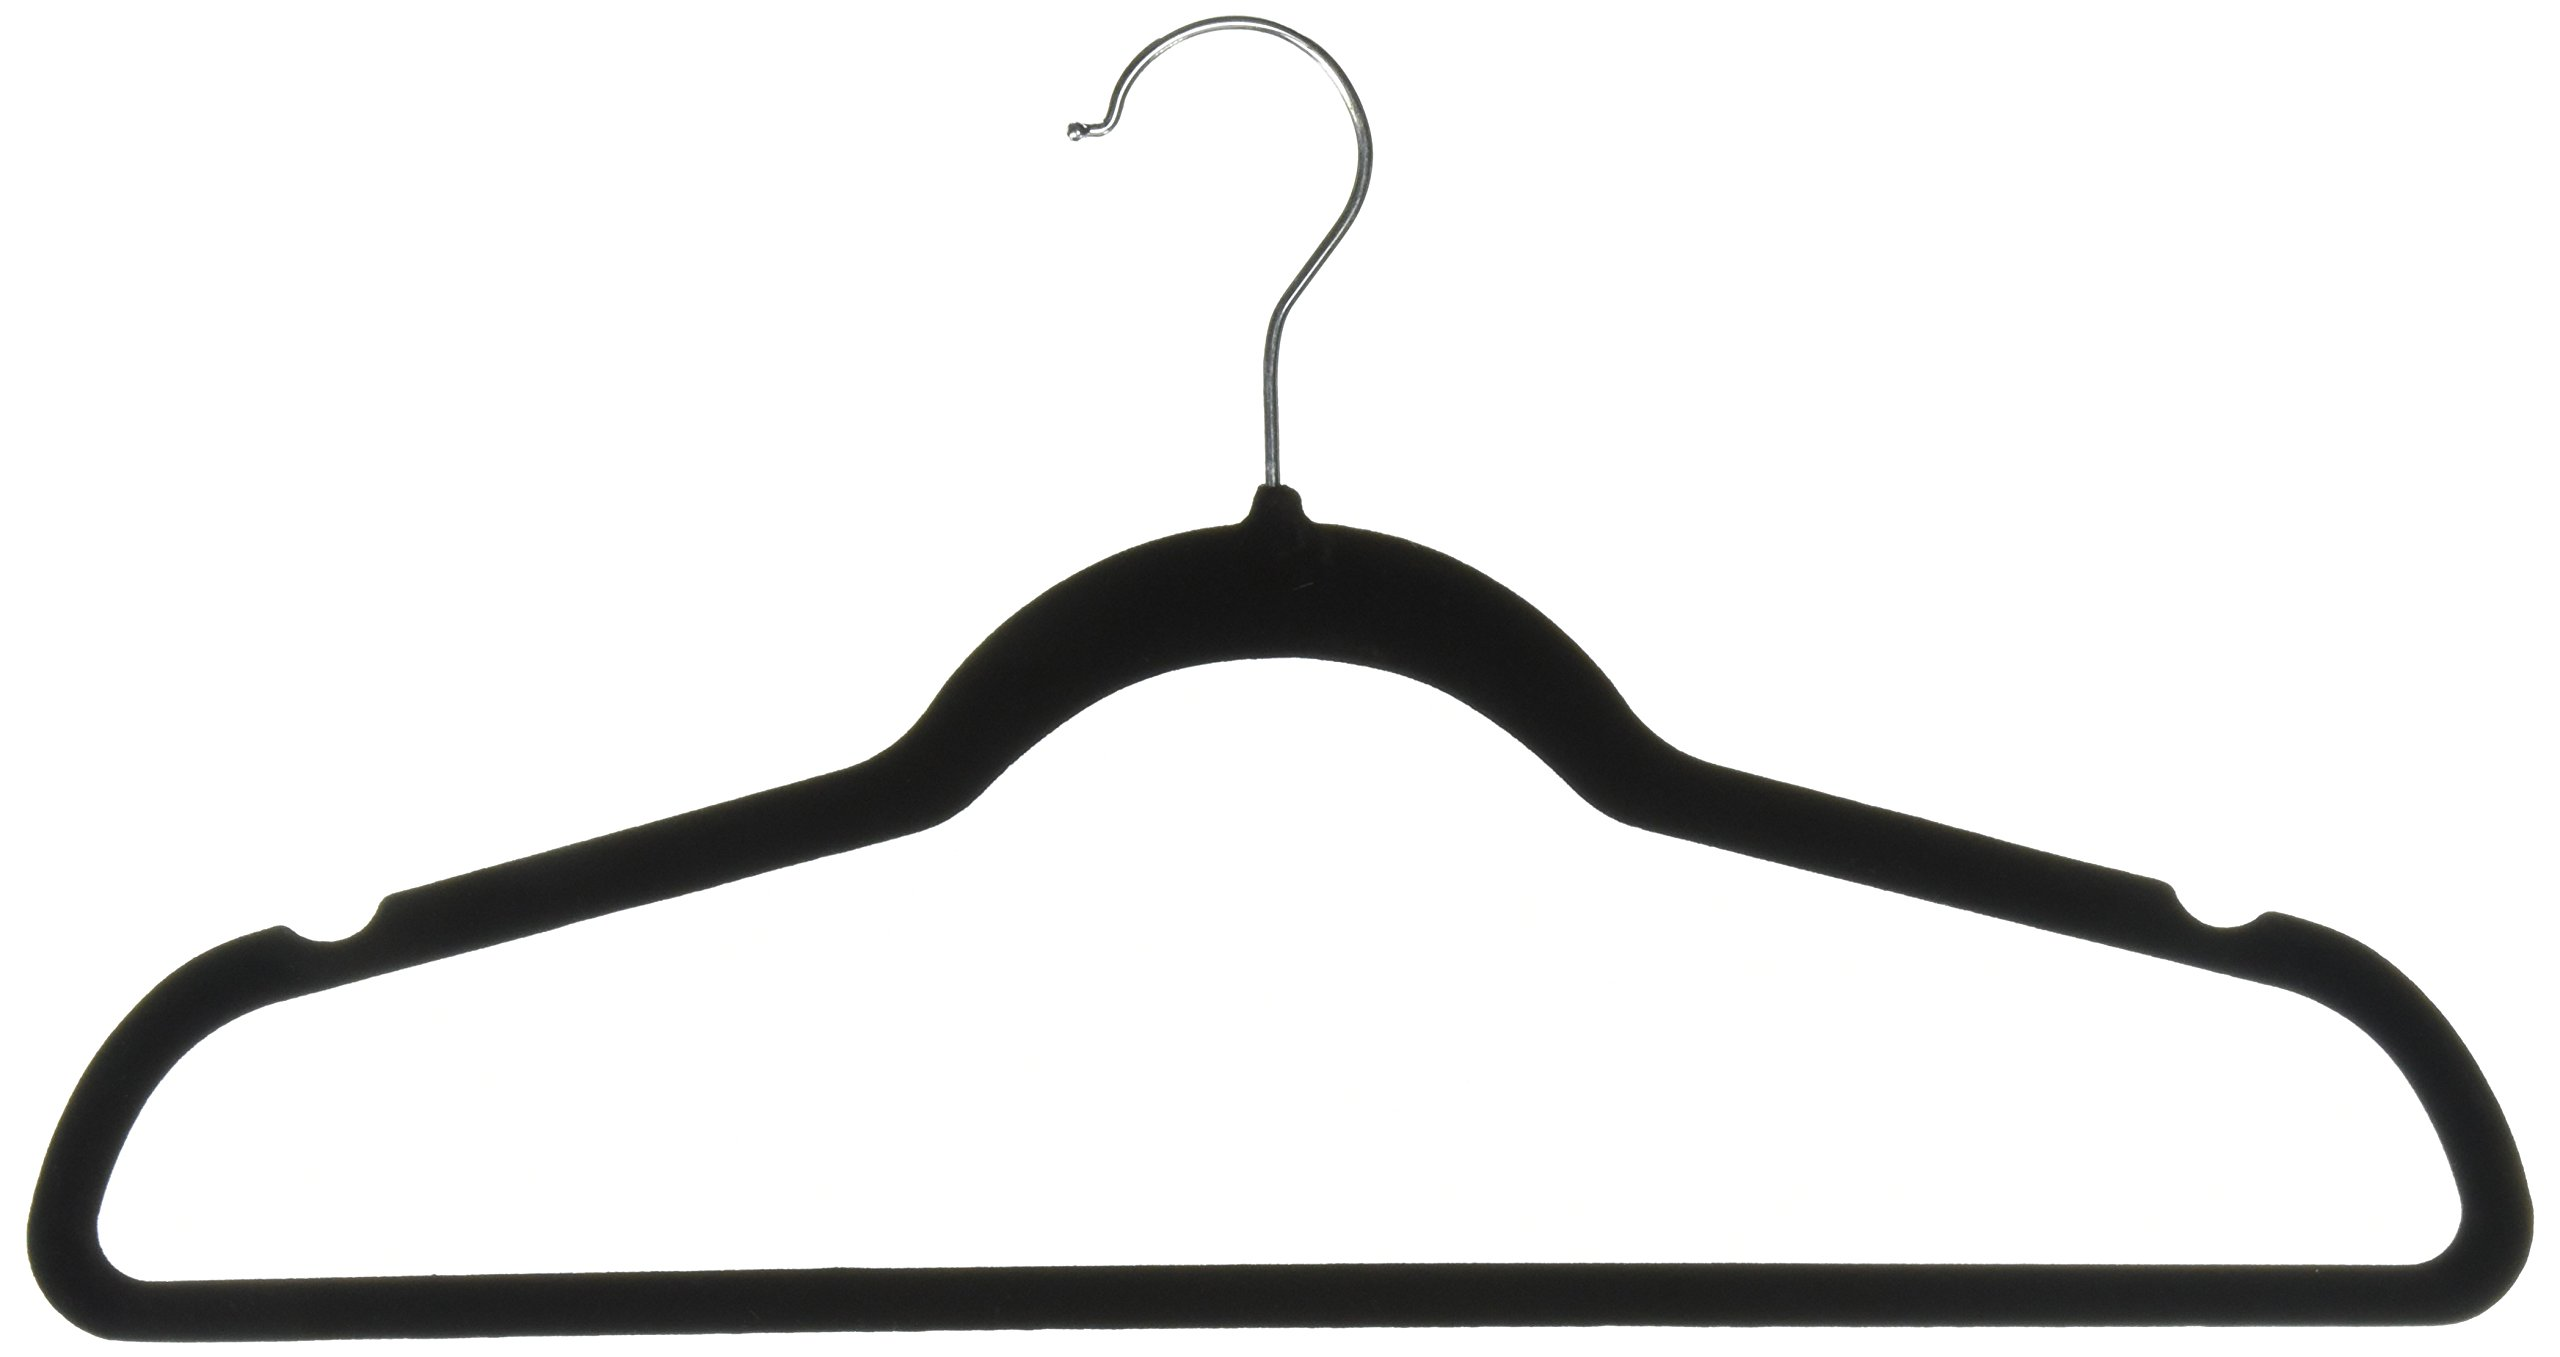 PEP-STEP Velvet Hangers Non-Slip Flocked Clothes Hangers [25 Pack] Ultra Thin Space Saving Design for Men and Women Dress Suit - 360 Degree Swivel Hook - Heavy Duty Construction with - Black